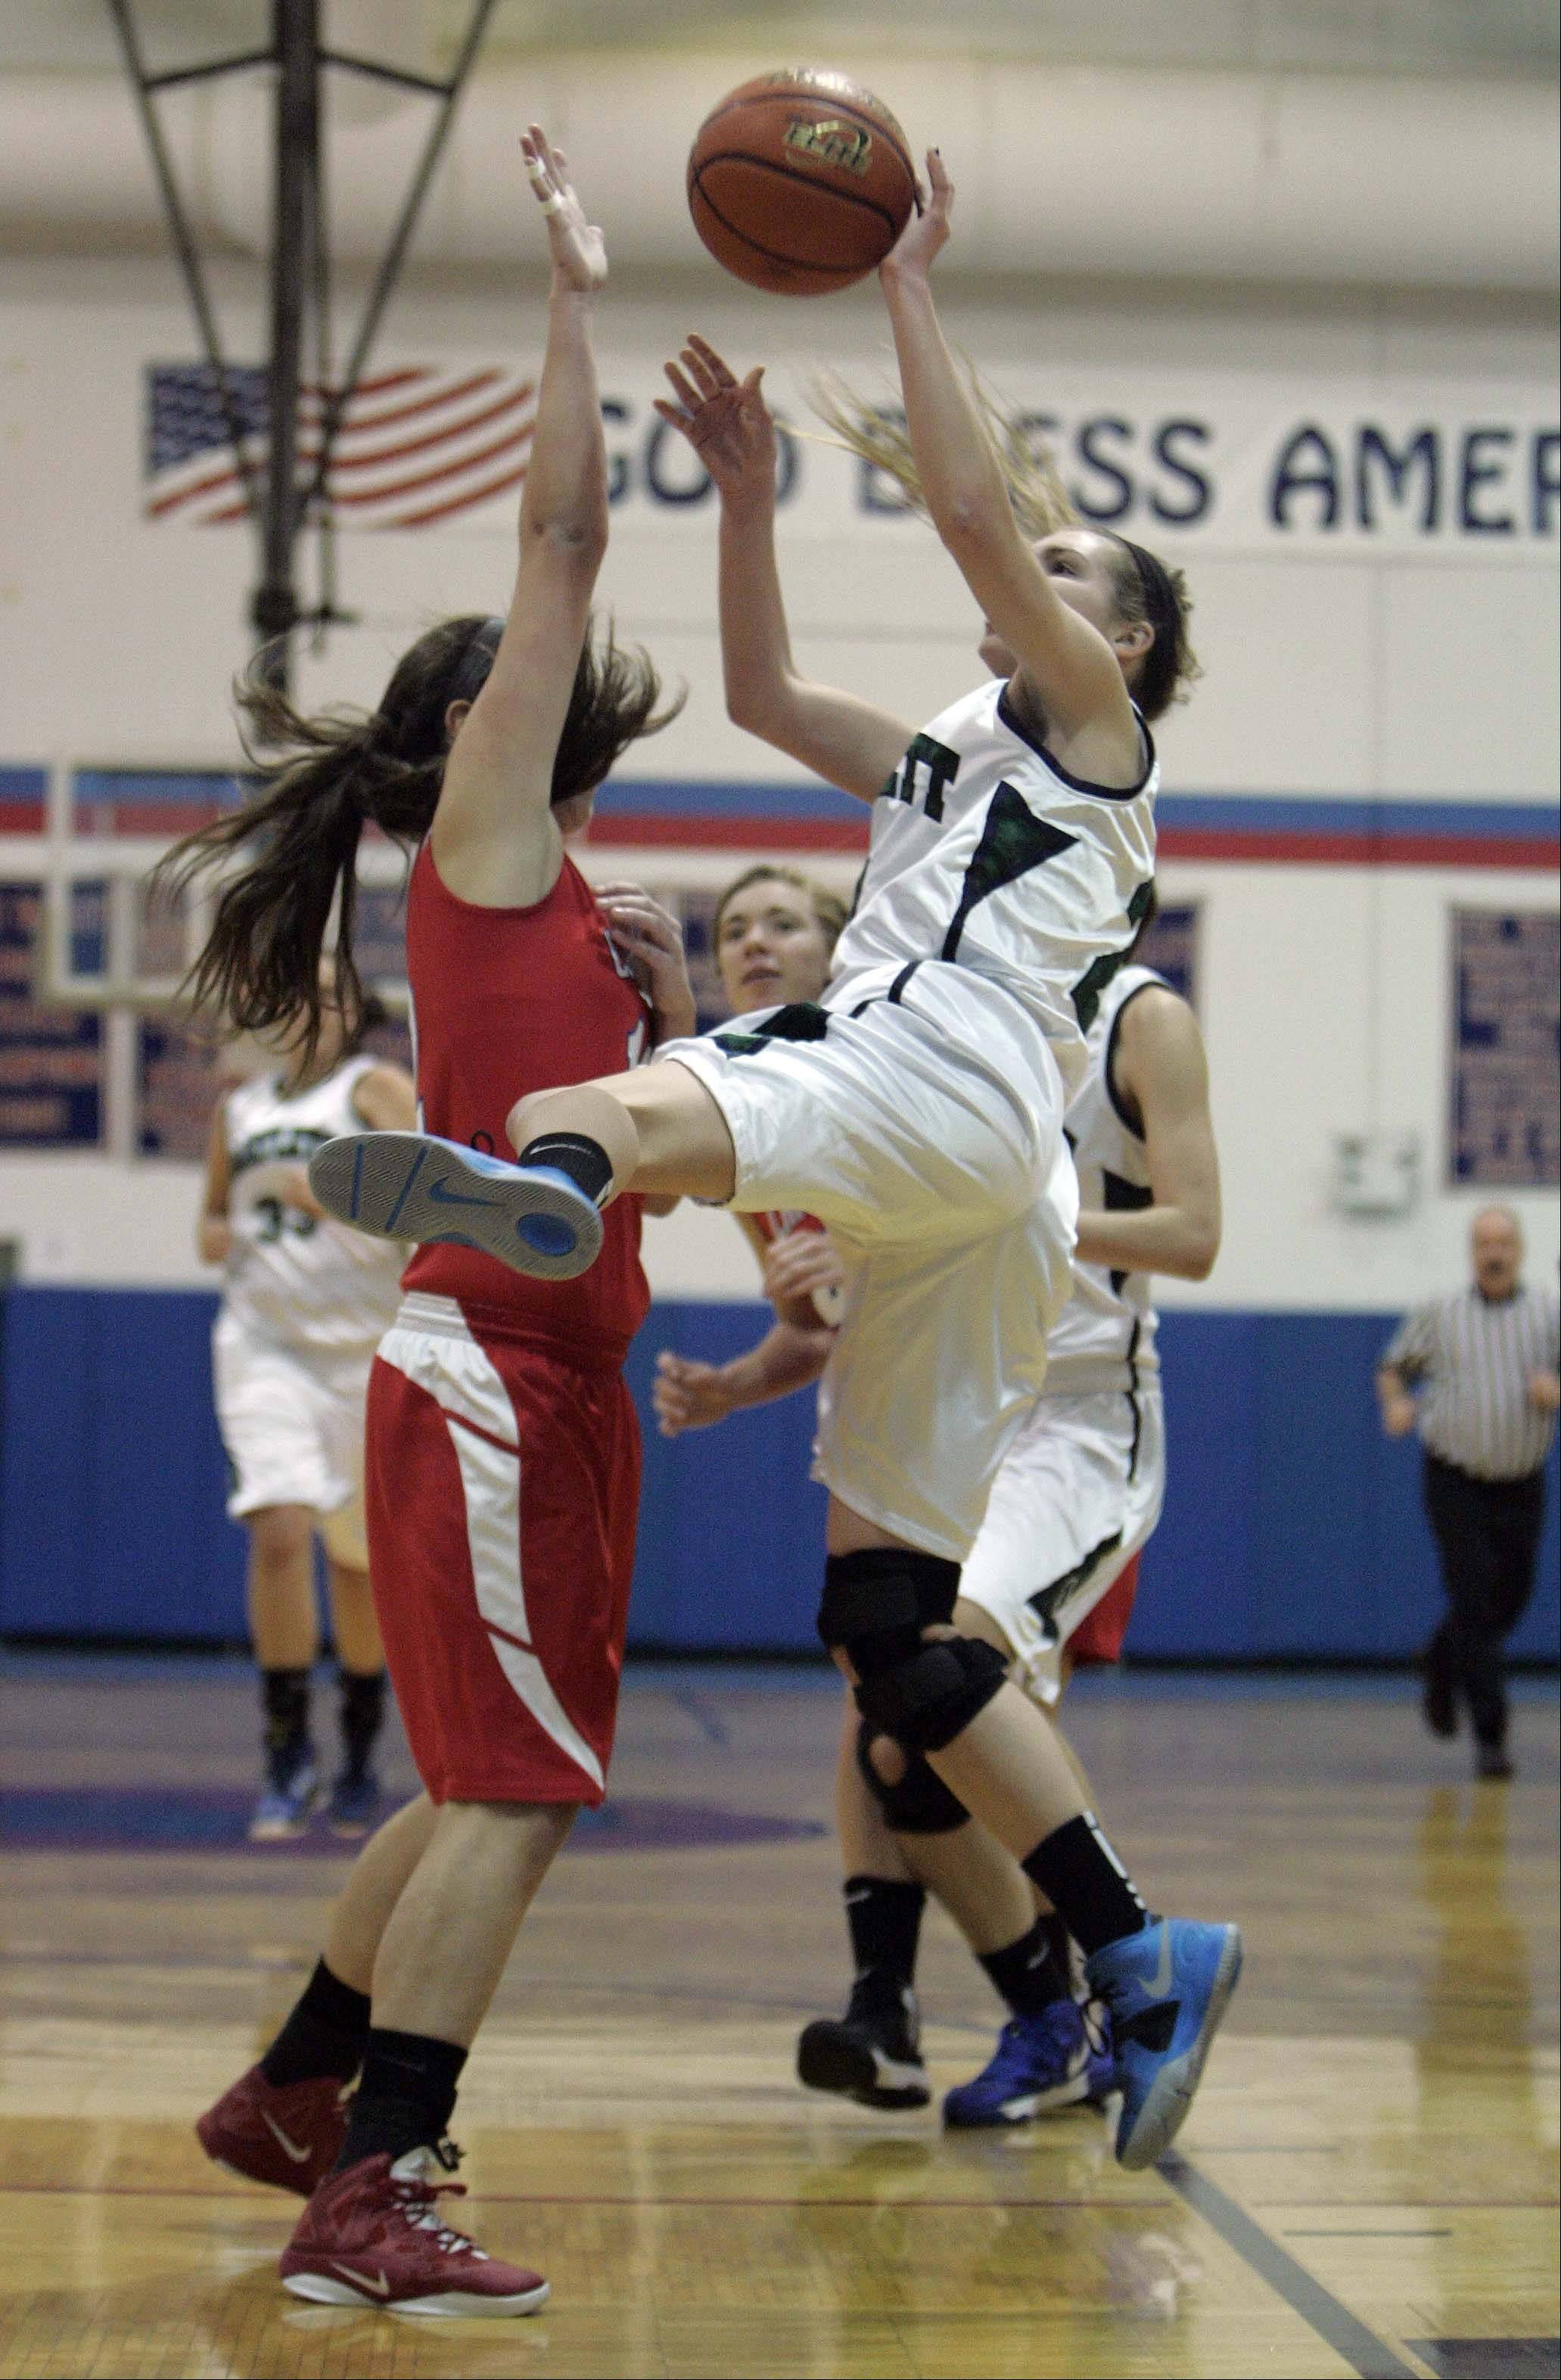 Dundee-Crown's Lauren Lococo, 12, puts up some pressure as Bartlett's Chantel Zasada, 21, goes up for a shot during the Dundee-Crown 30th Annual Charger Classic girls basketball tournament Thursday December 27, 2012 at the Carpentersville School.